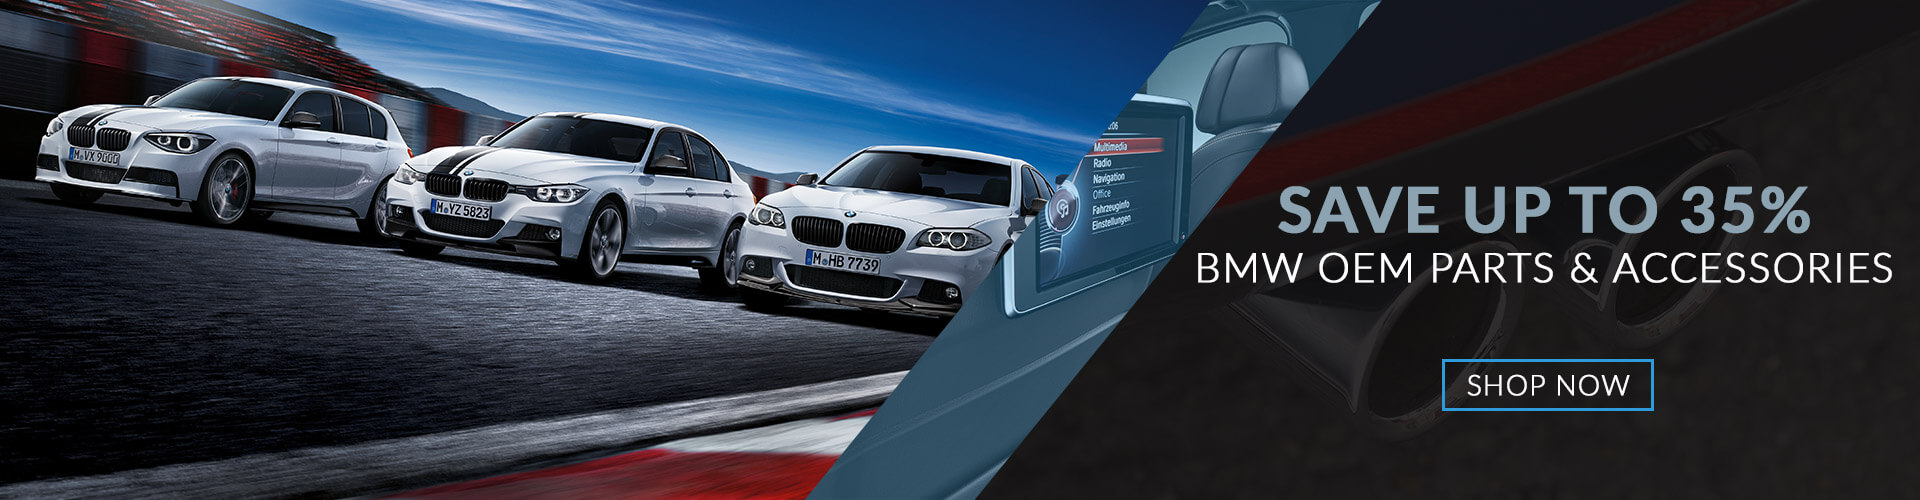 Save up to 35% on BMW OEM Parts & Accessories